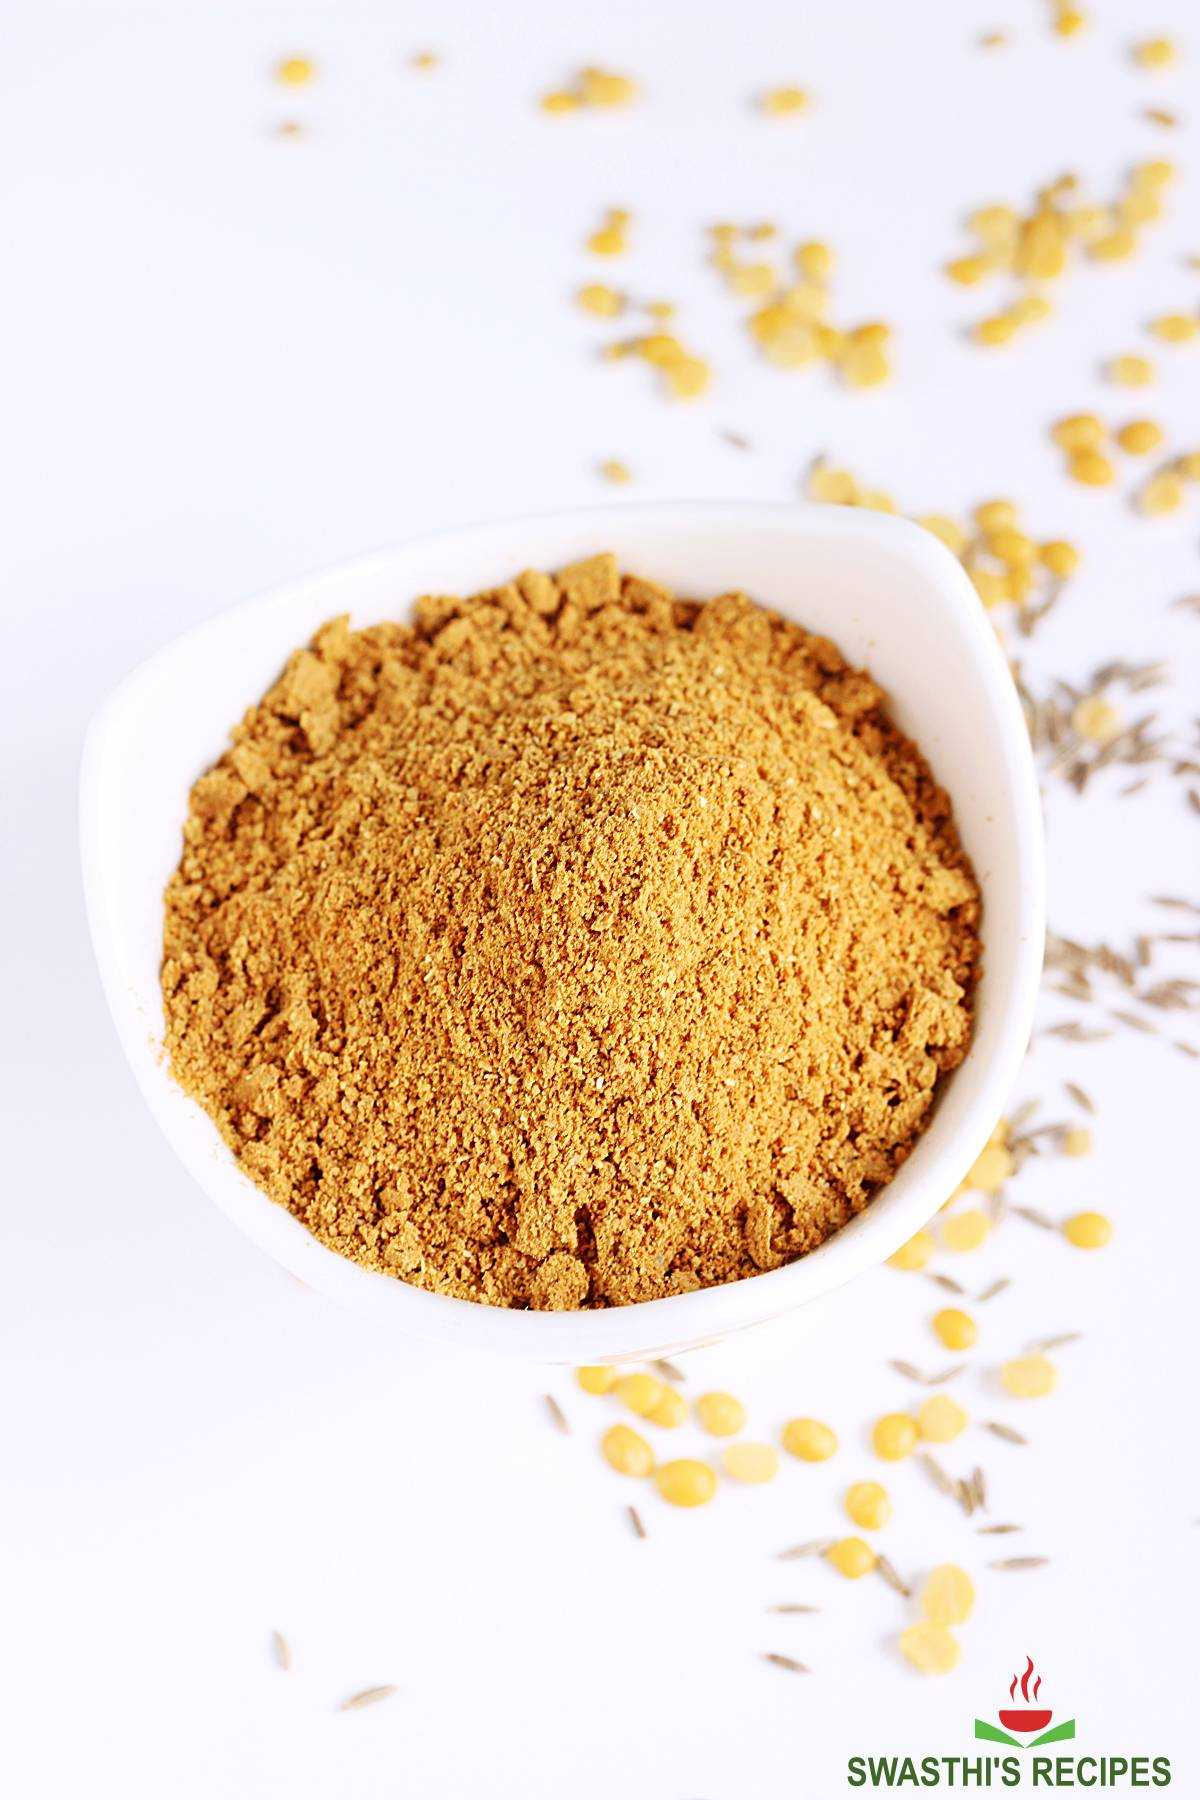 rasam powder made with lentils and spices